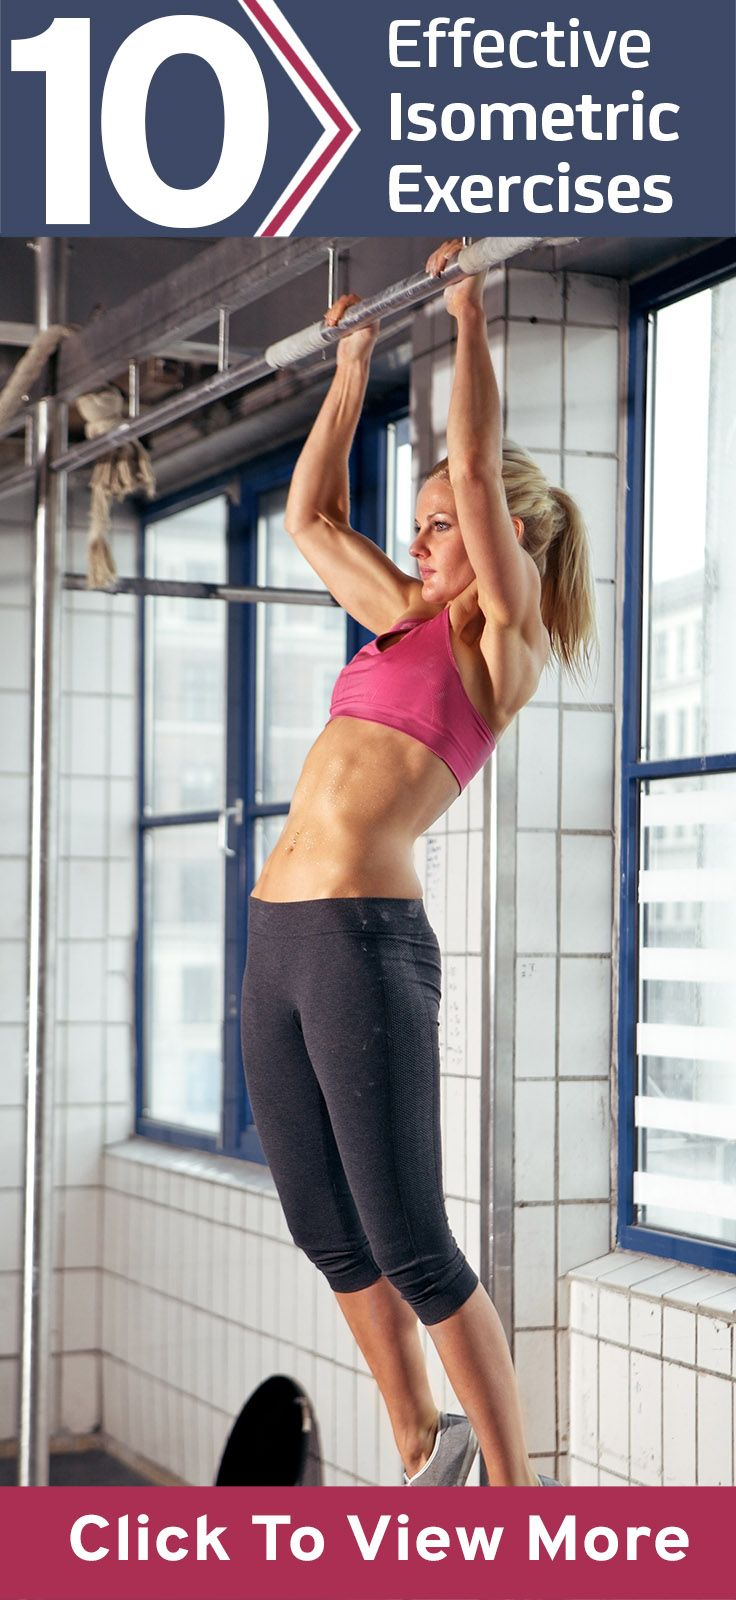 10 Effective Isometric #Exercises And Their Benefits .. #FitClub